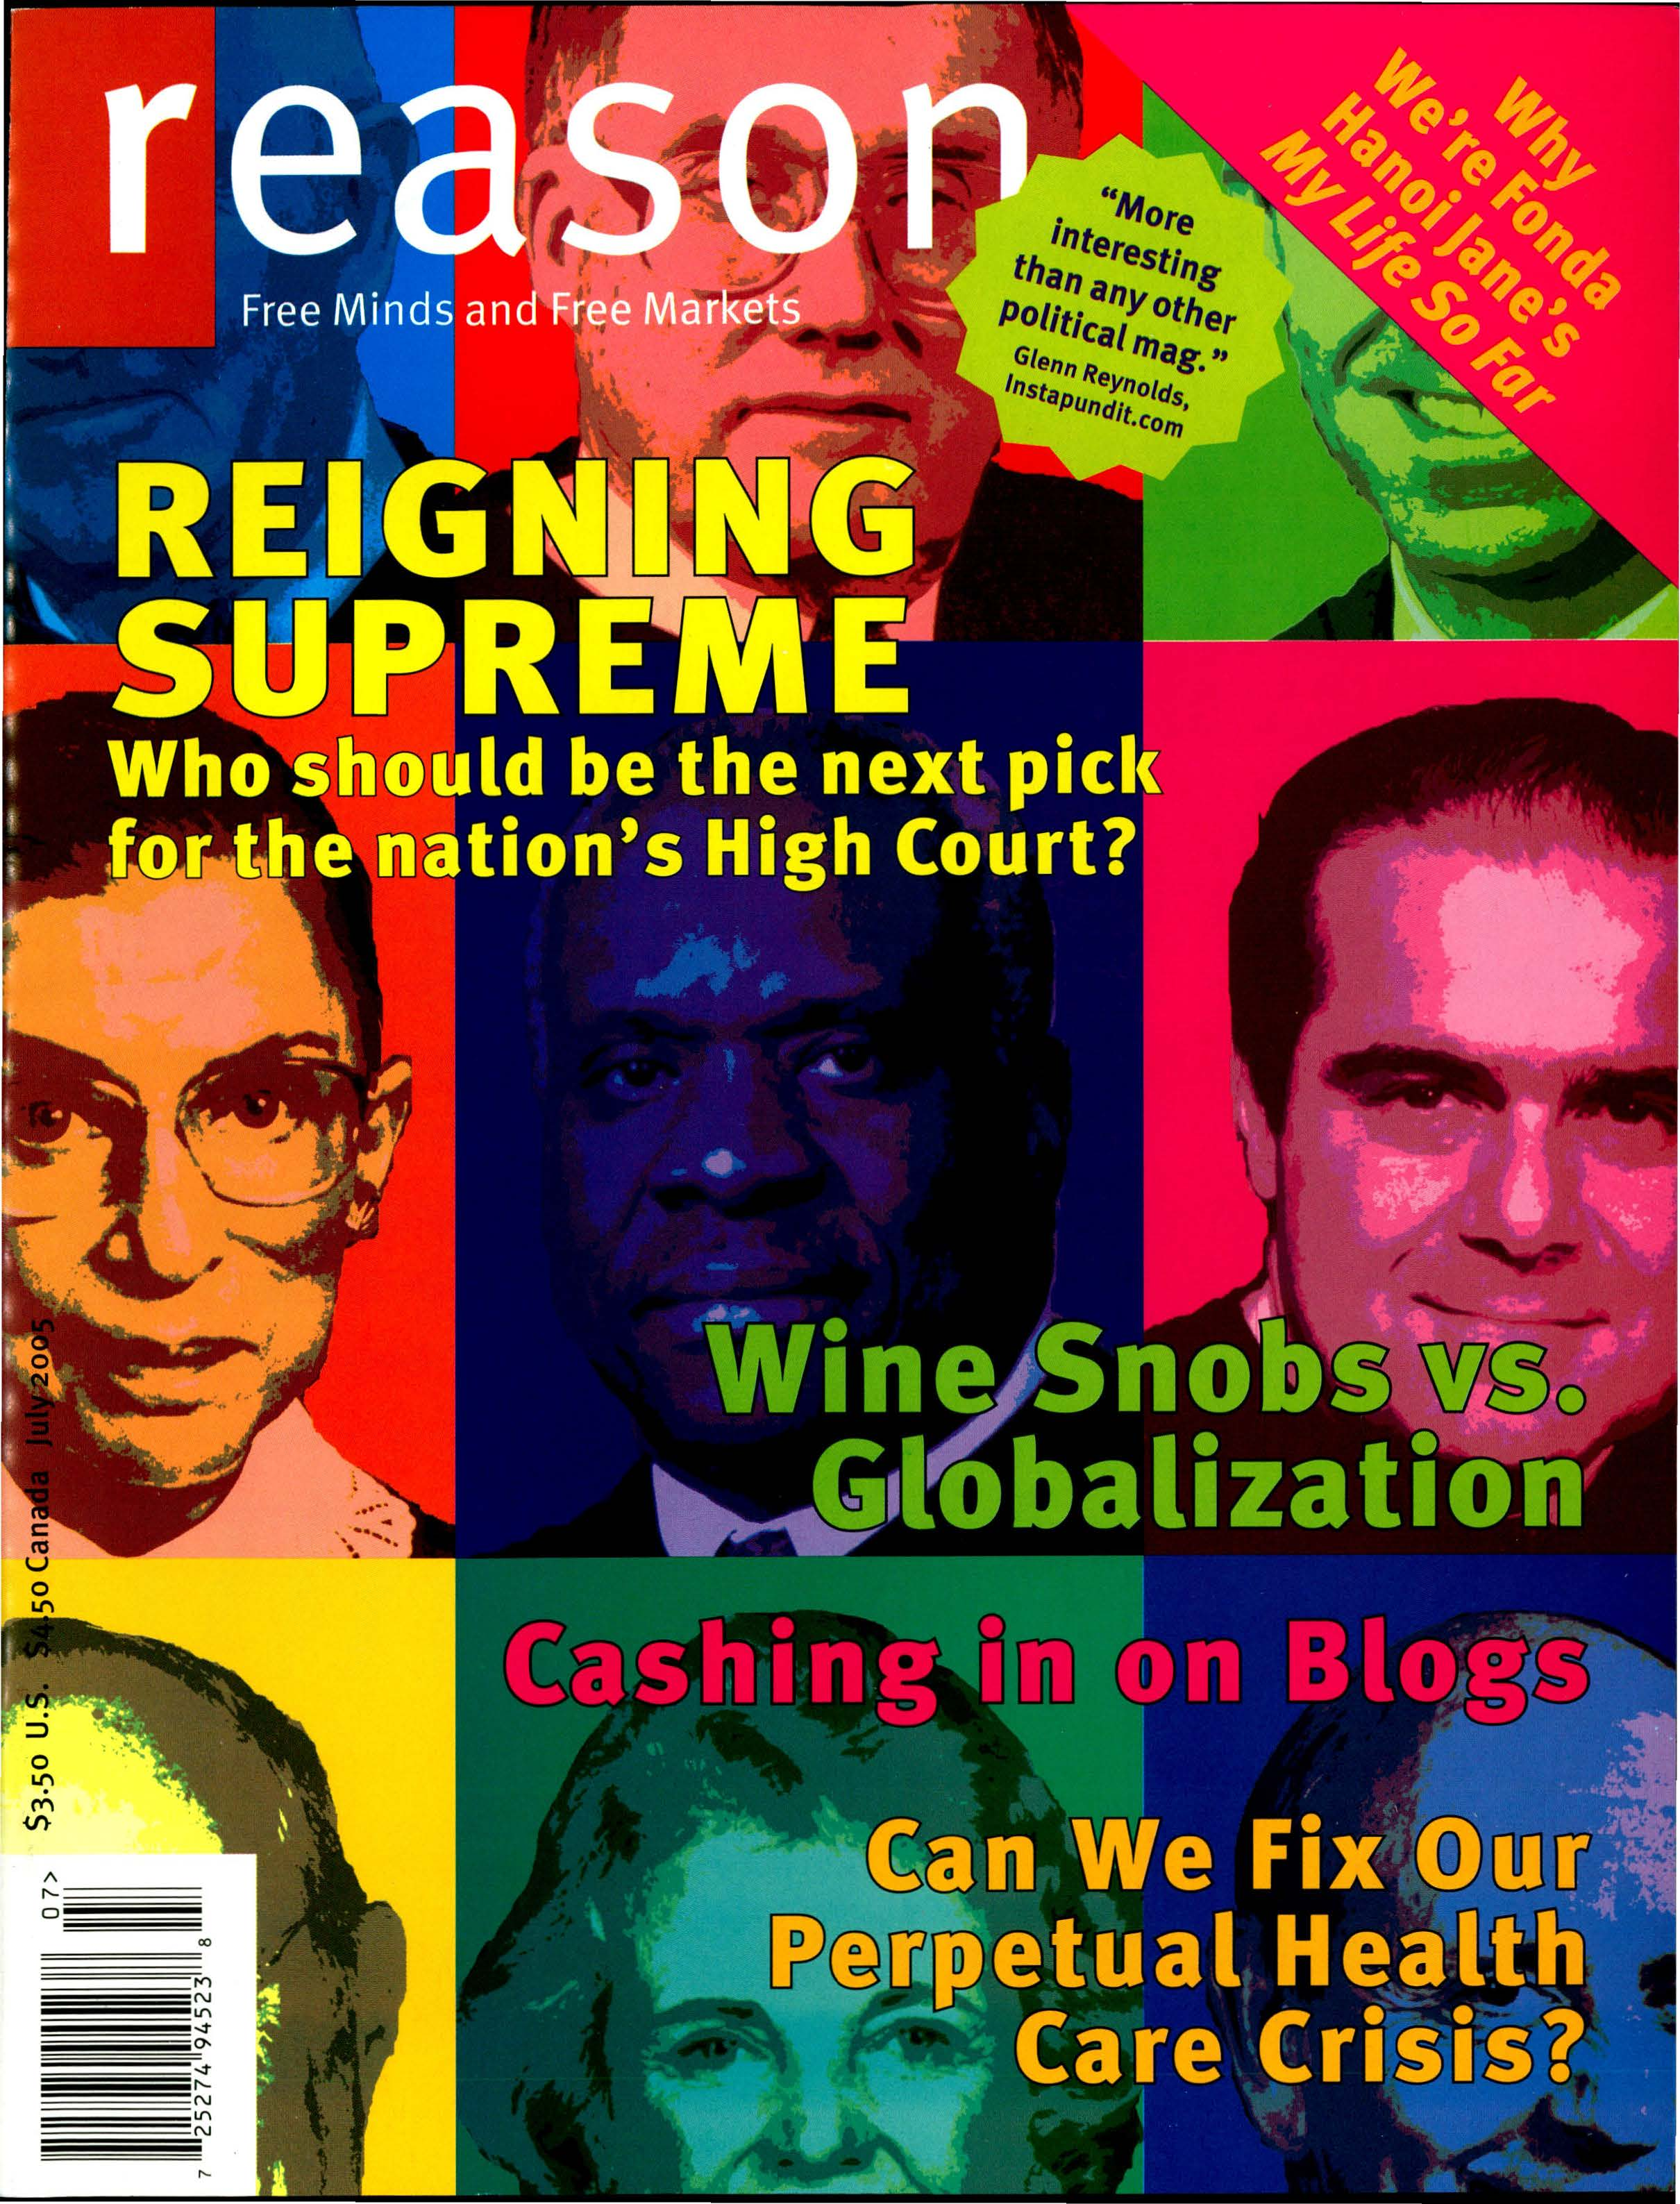 Reason Magazine, July 2005 cover image